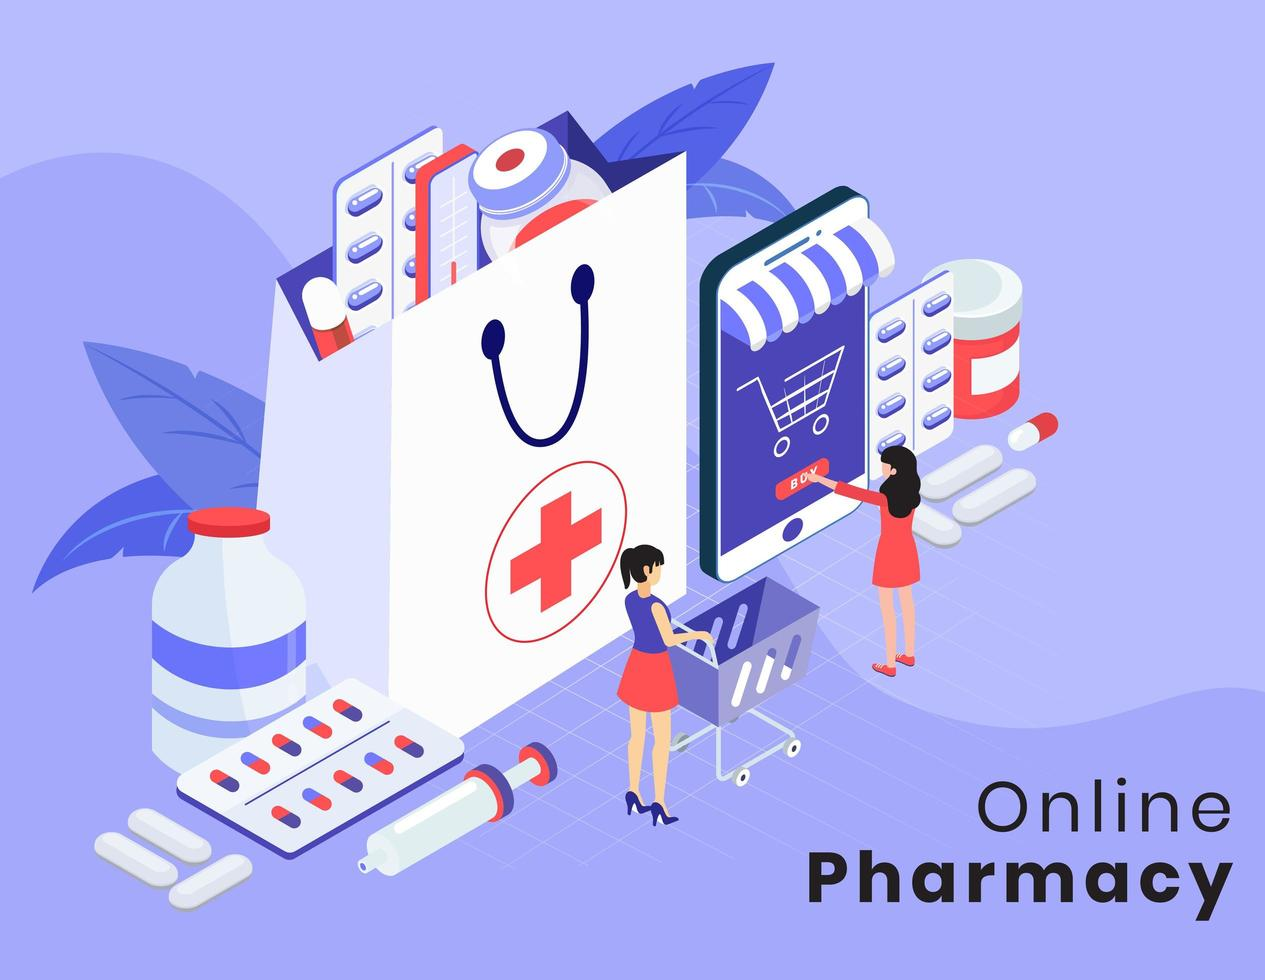 Online Pharmacy and medicine isometric layout vector